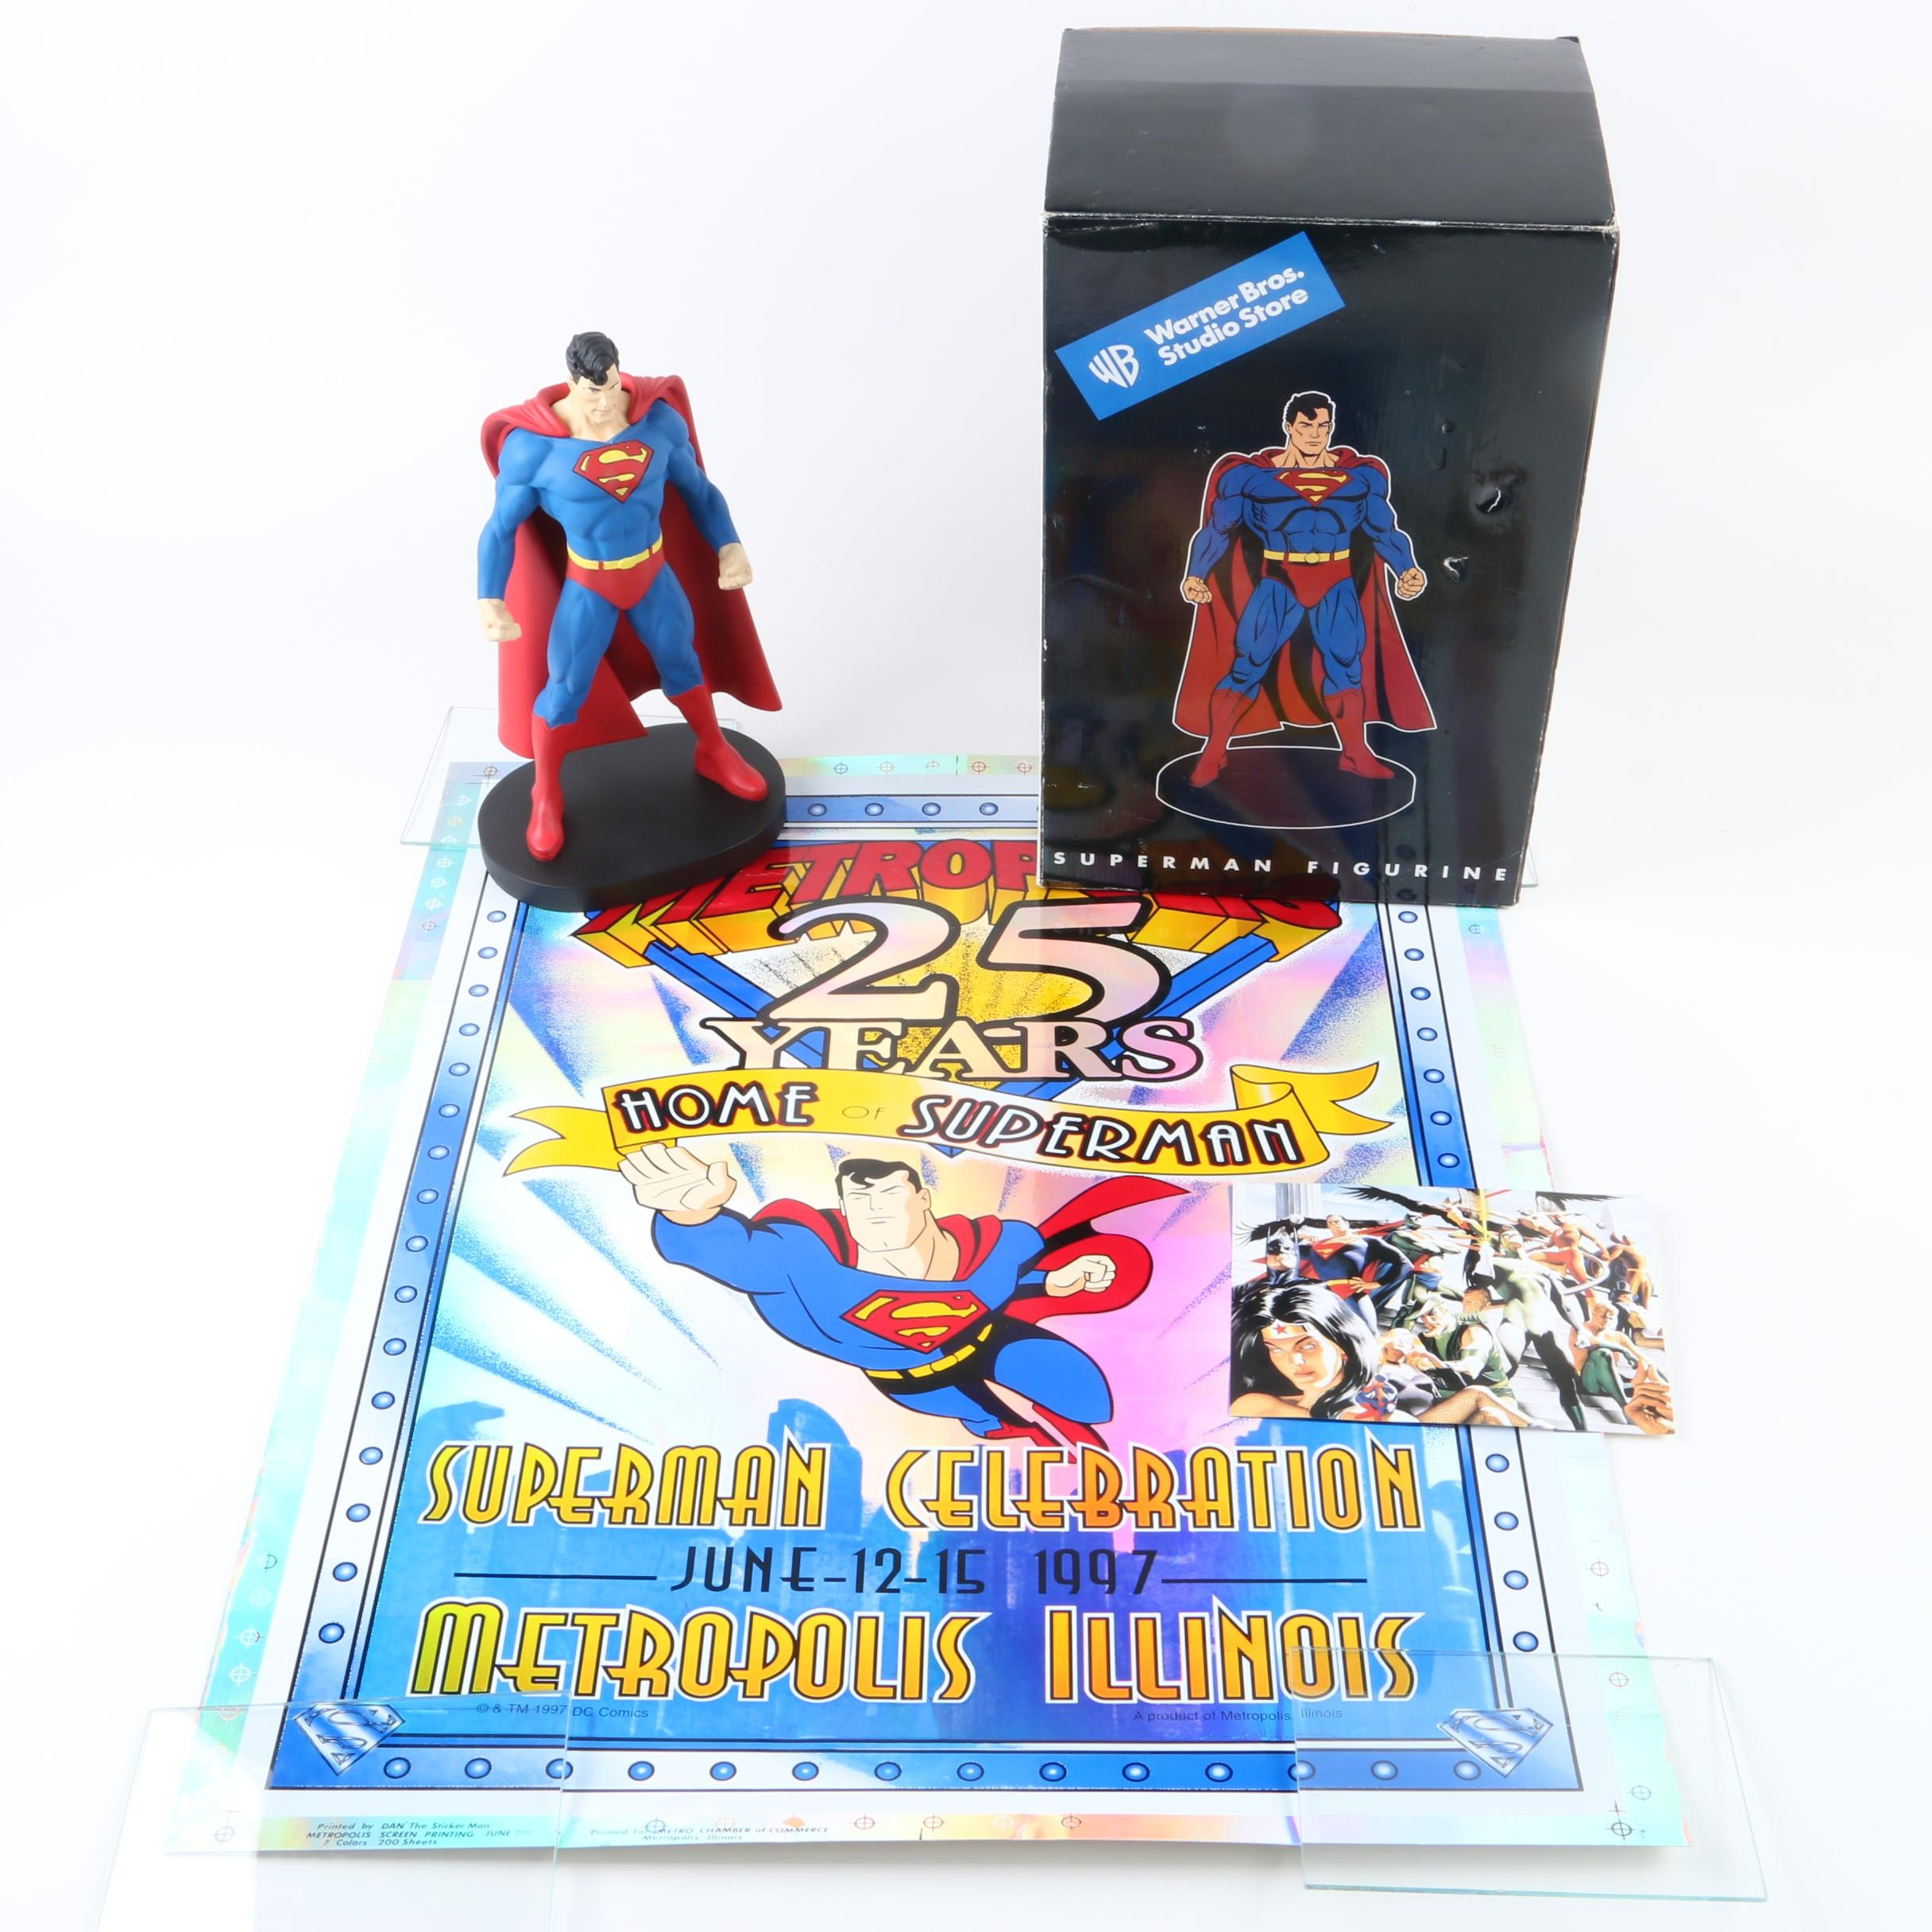 Superman Figurine by Warner Brothers with Superman Poster and Artist Card